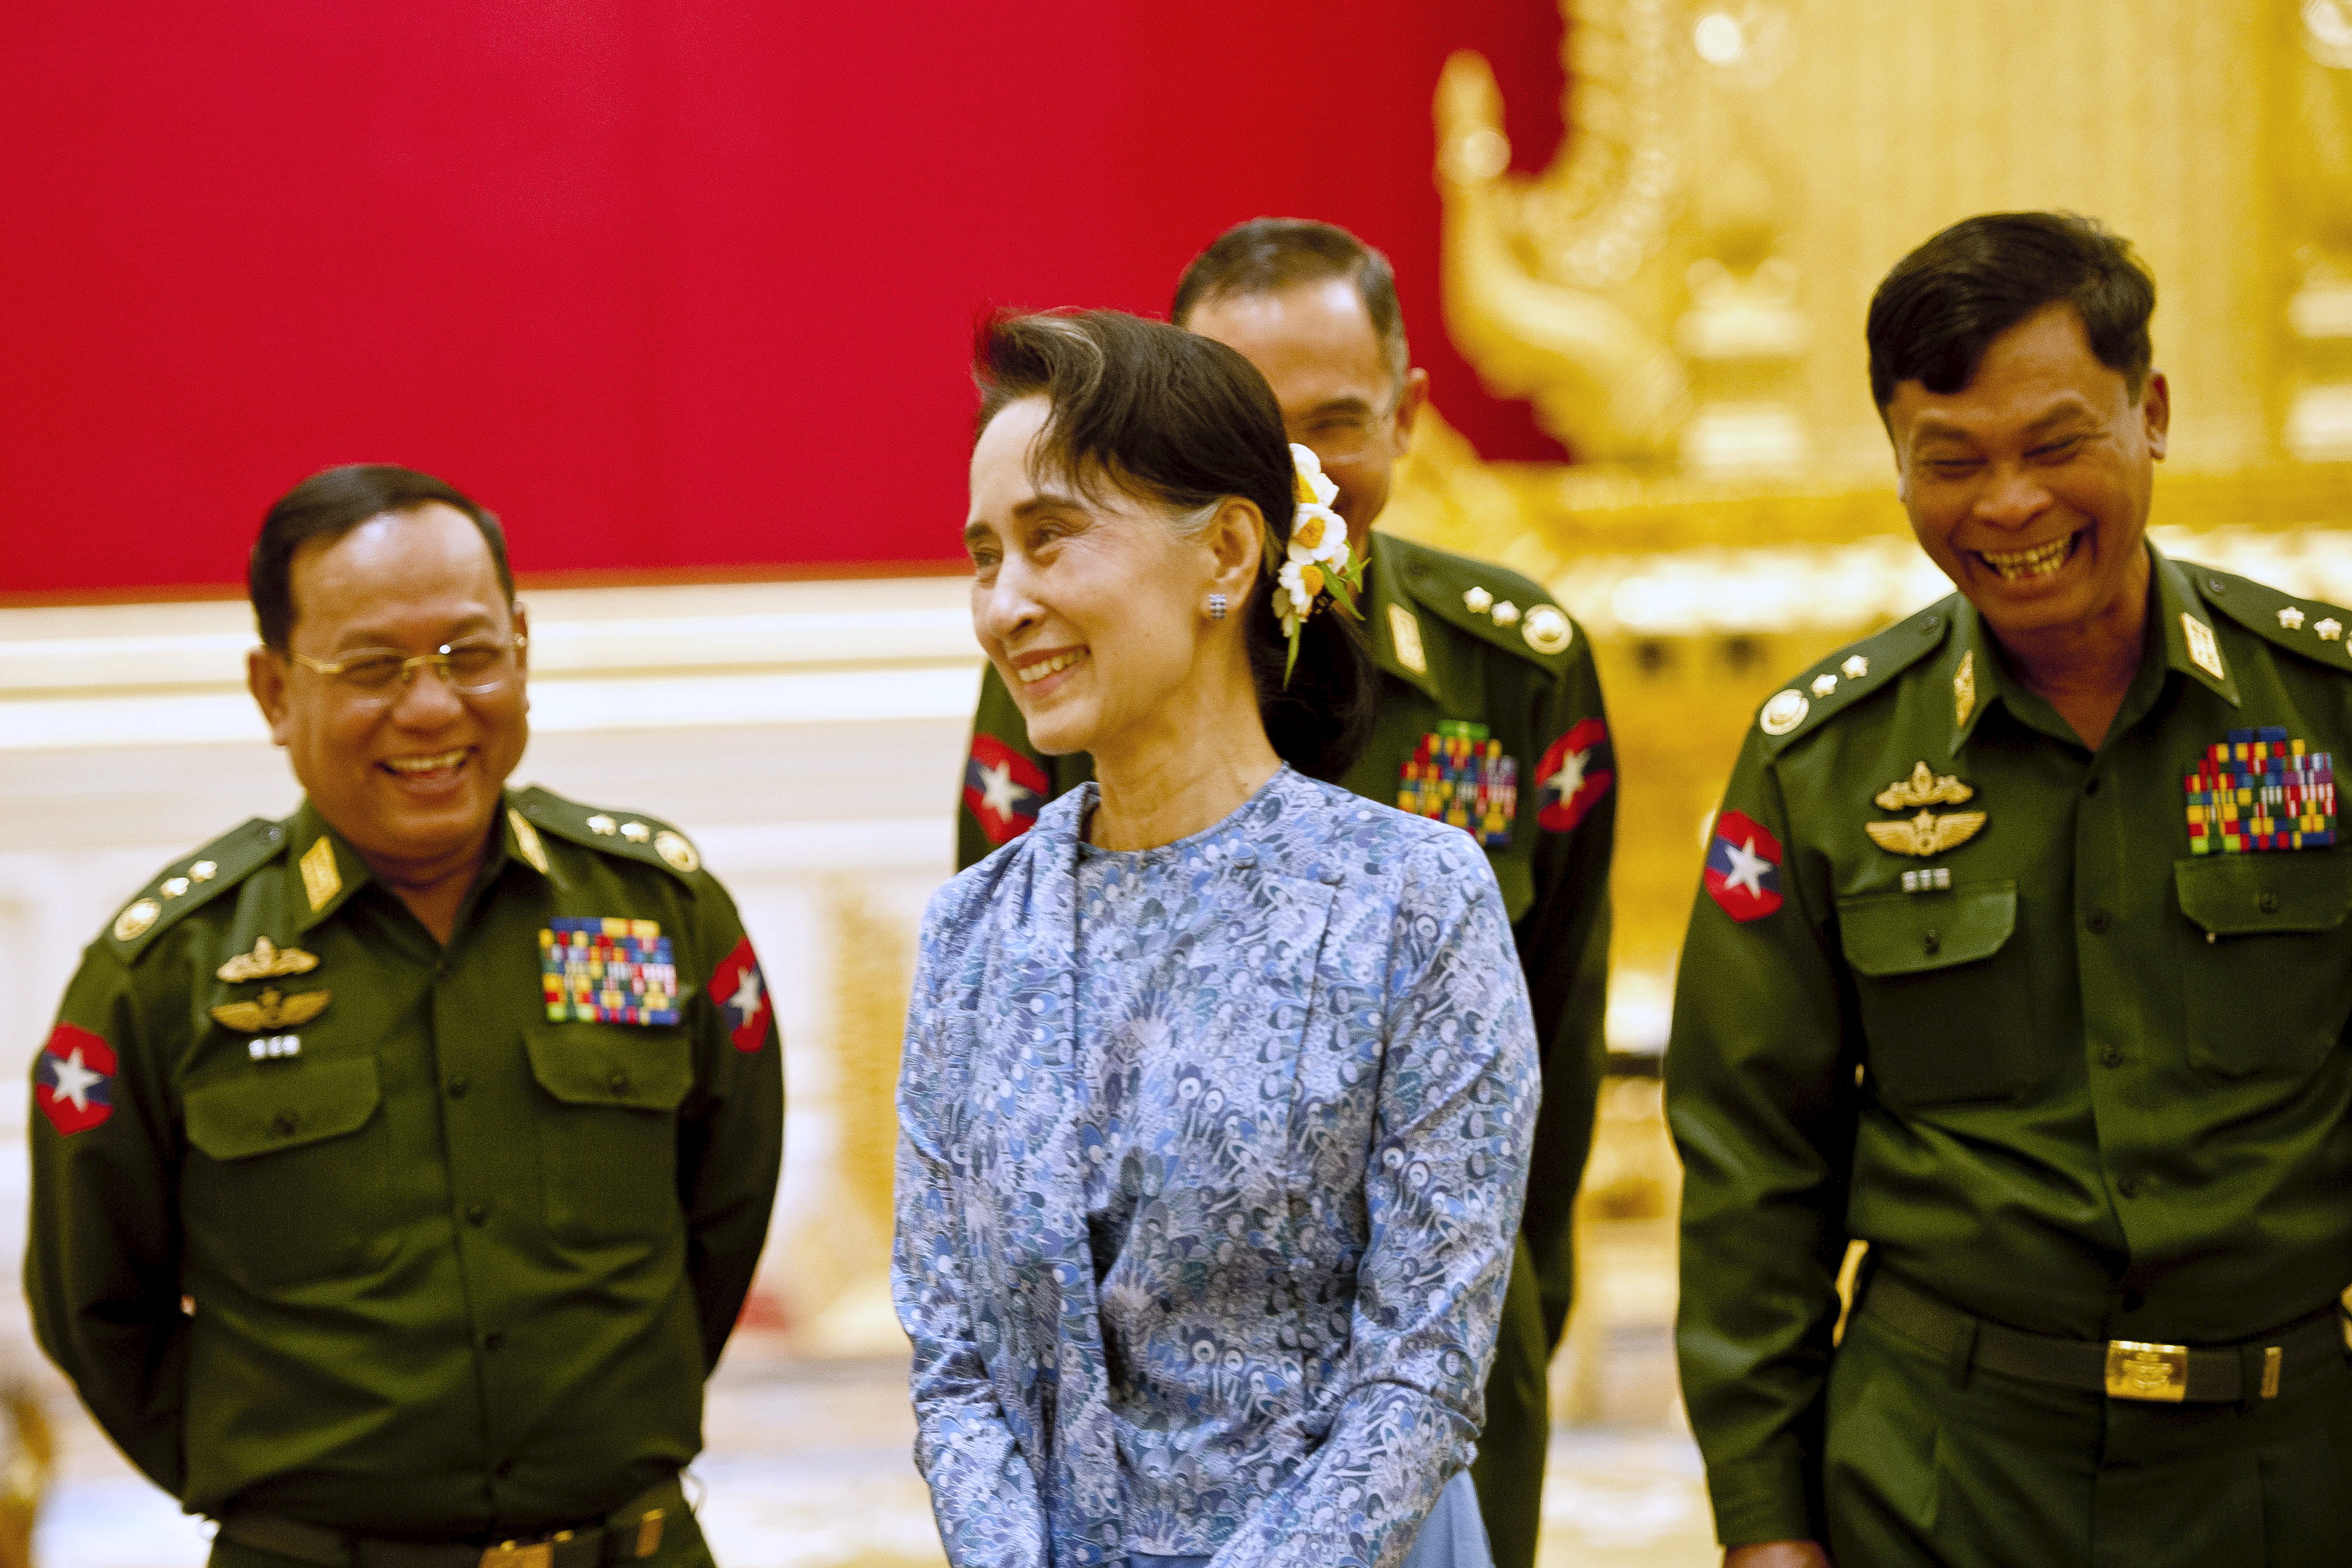 Aung San Suu Kyi, the National League for Democracy party's leader, smiles with army members during the handover ceremony at the presidential palace in Naypyitaw, Burma, on March 30, 2016